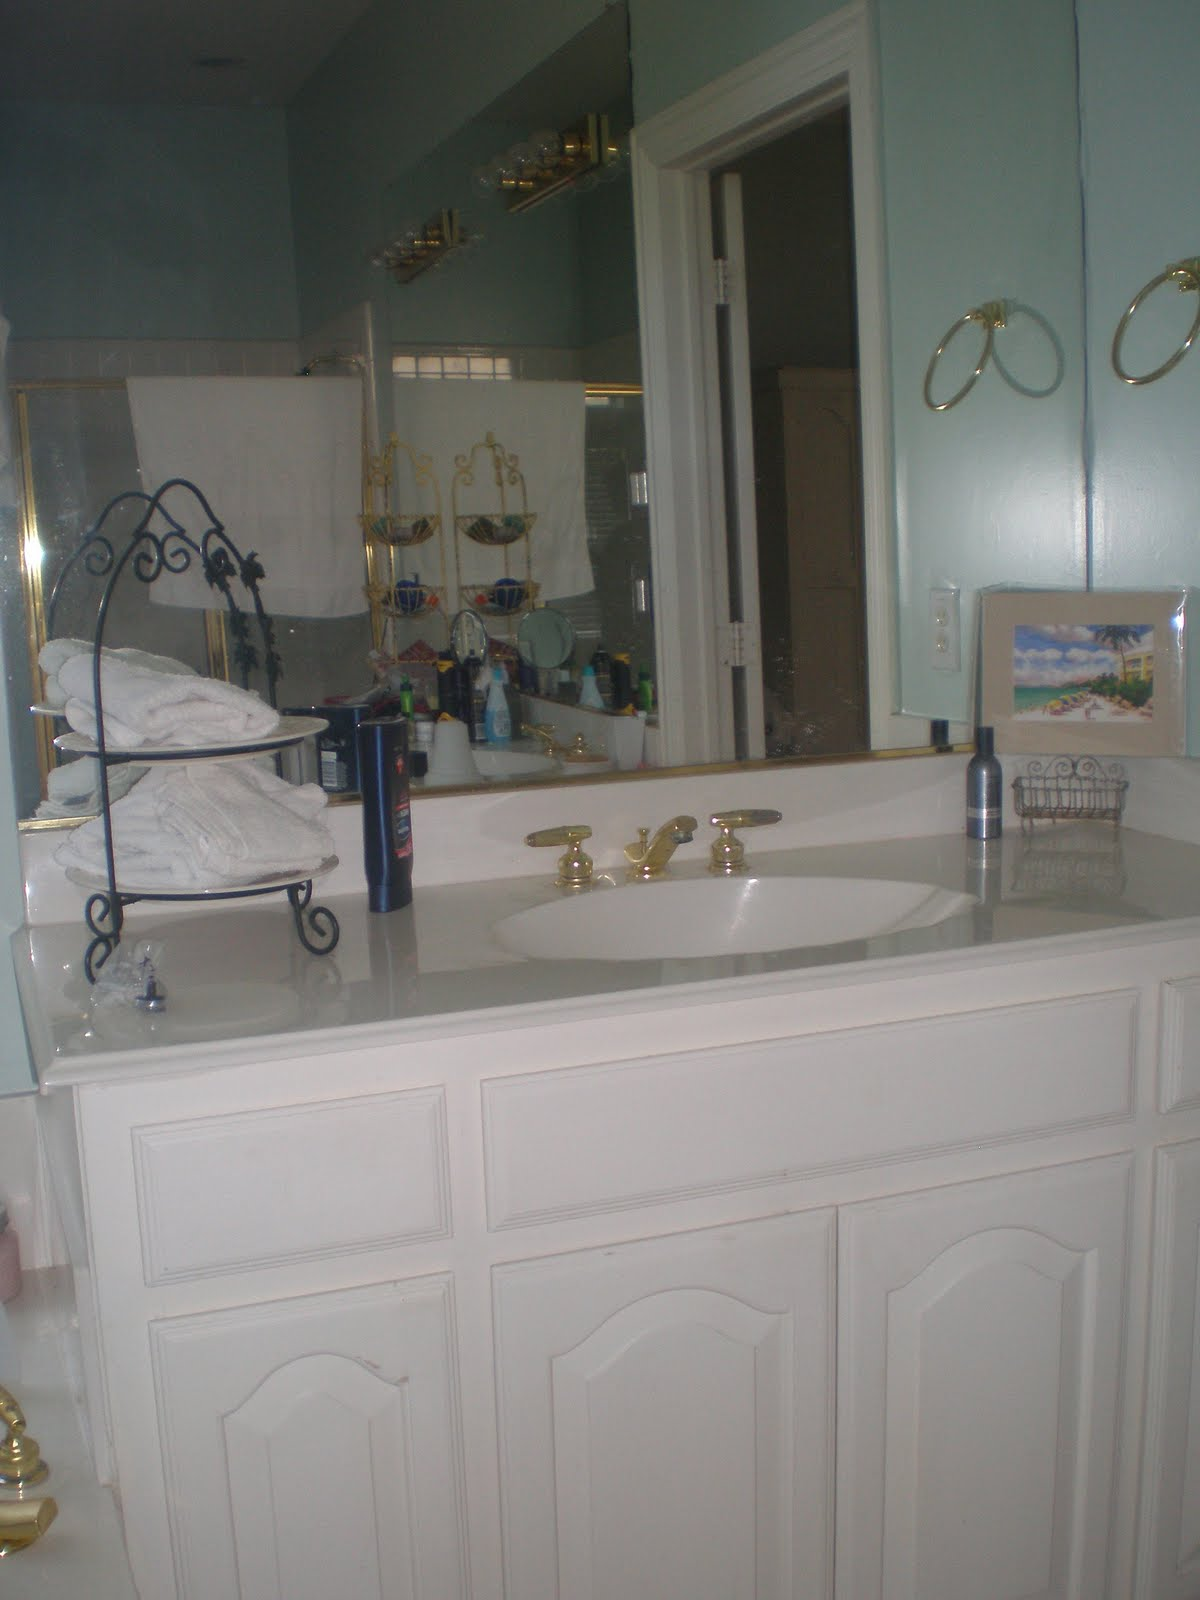 Painting Bathroom Fixtures Can You Spray Paint Bathroom Faucetsoh Yes You Can The